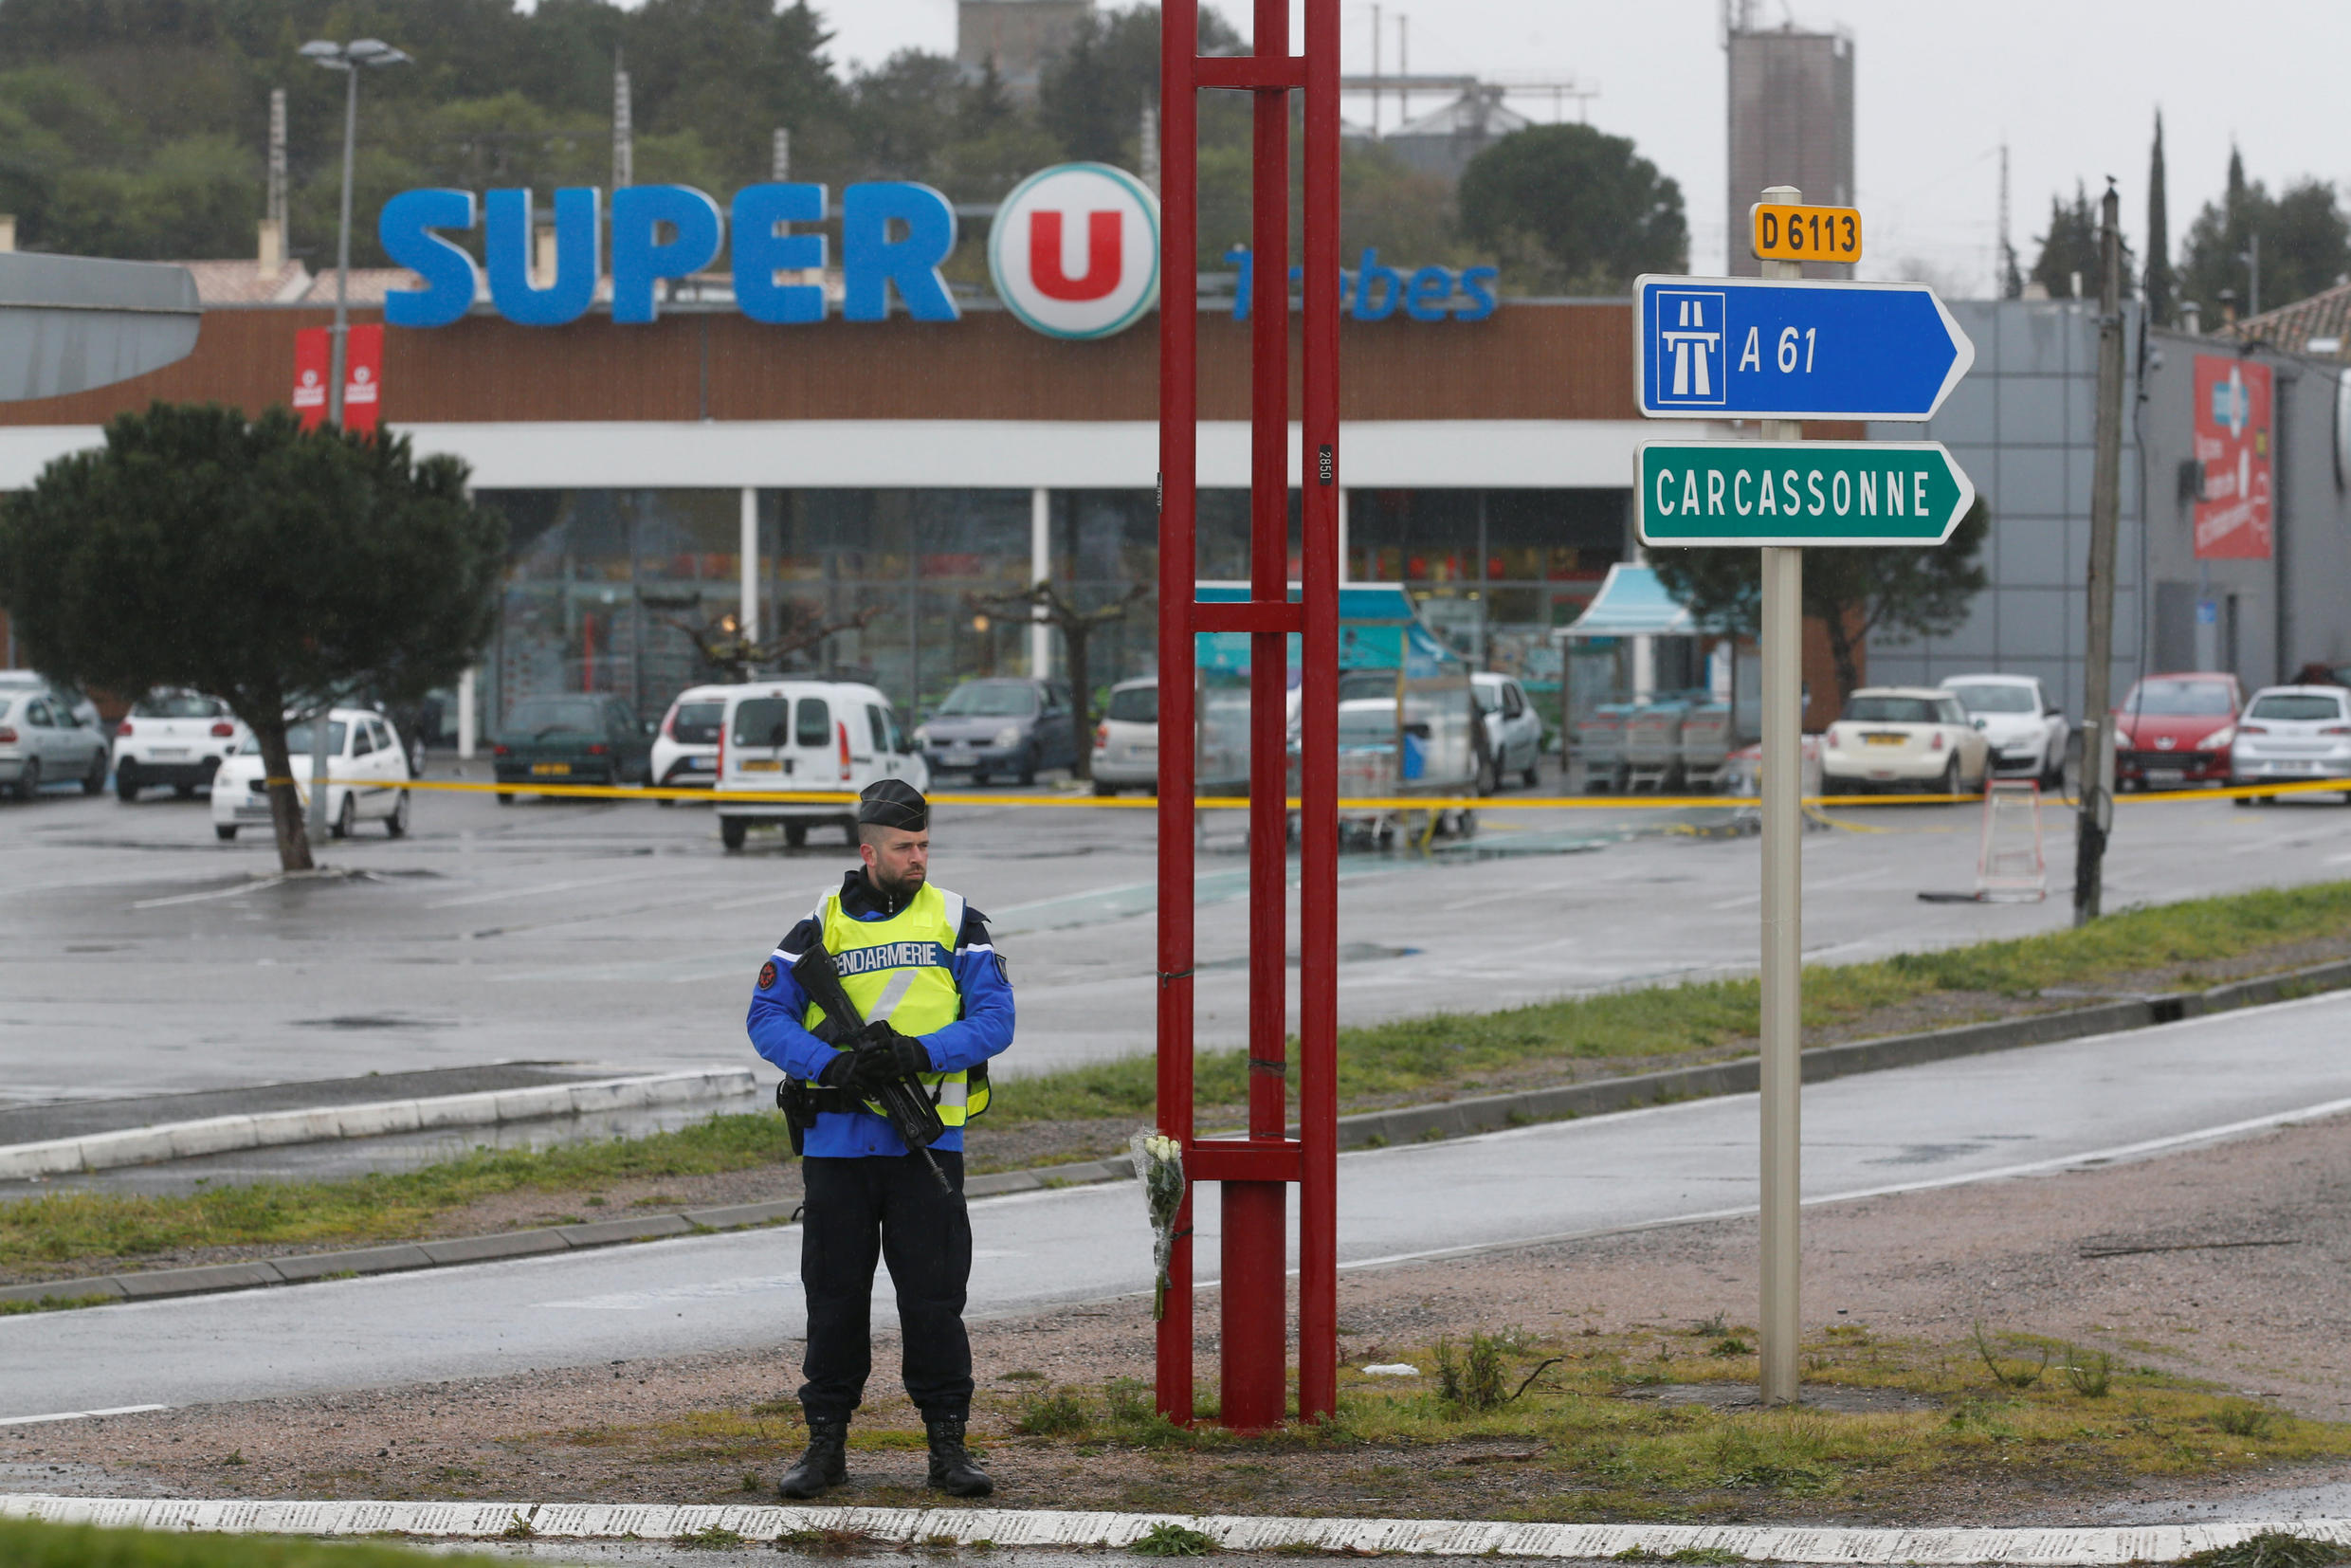 A French gendarme secures the access to a supermarket after a hostage situation in Trèbes on 24 March, 2018.